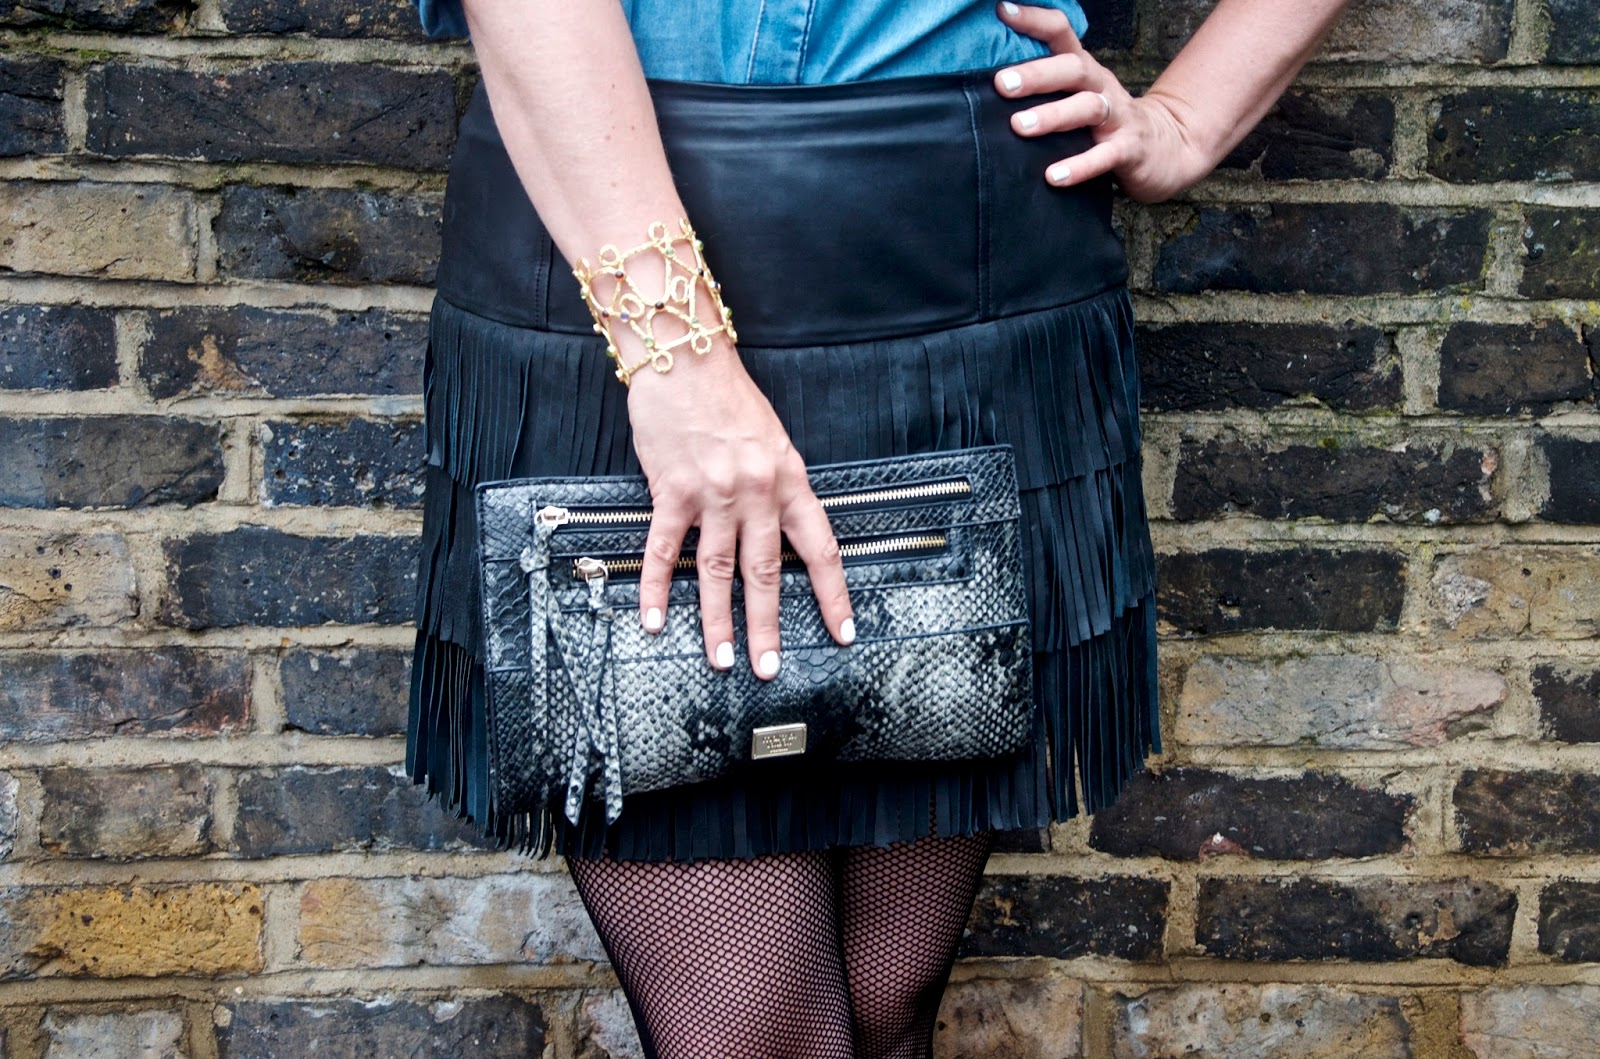 snakeskin clutch, gold cuff, denim shirt, leather fringe skirt and black fishnet tights